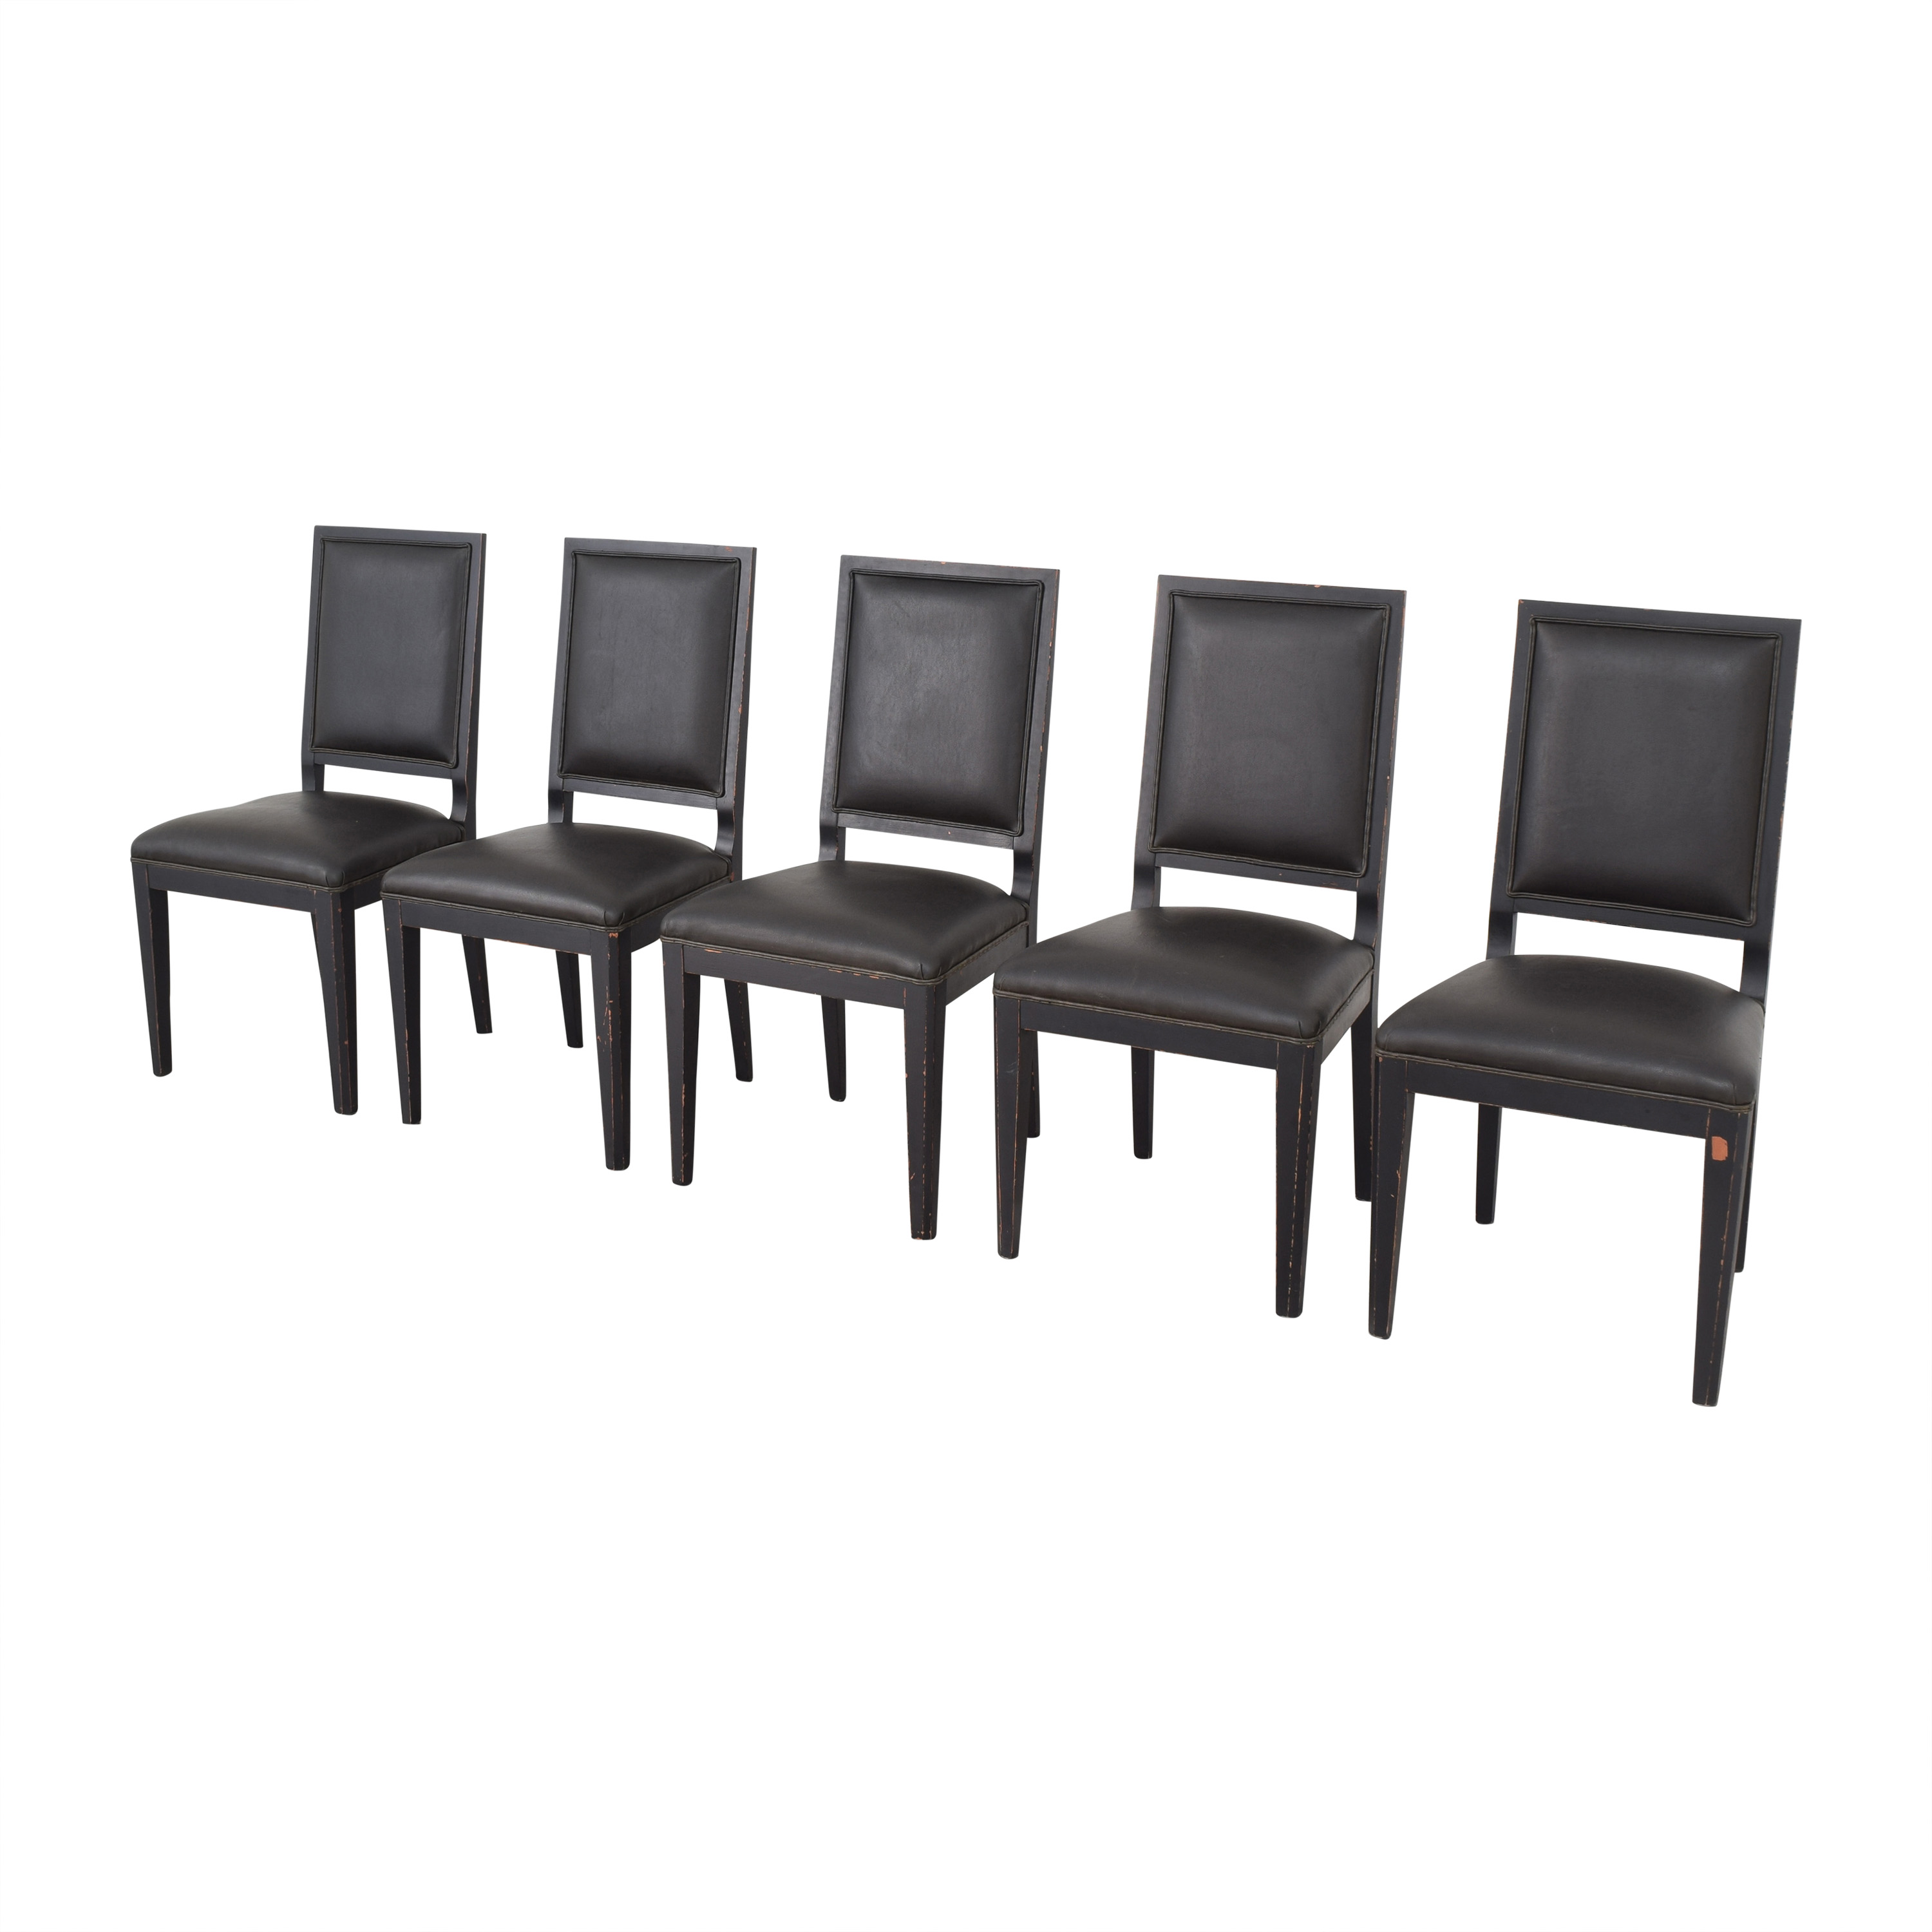 buy Crate & Barrel Crate & Barrel High Back Dining Chairs online